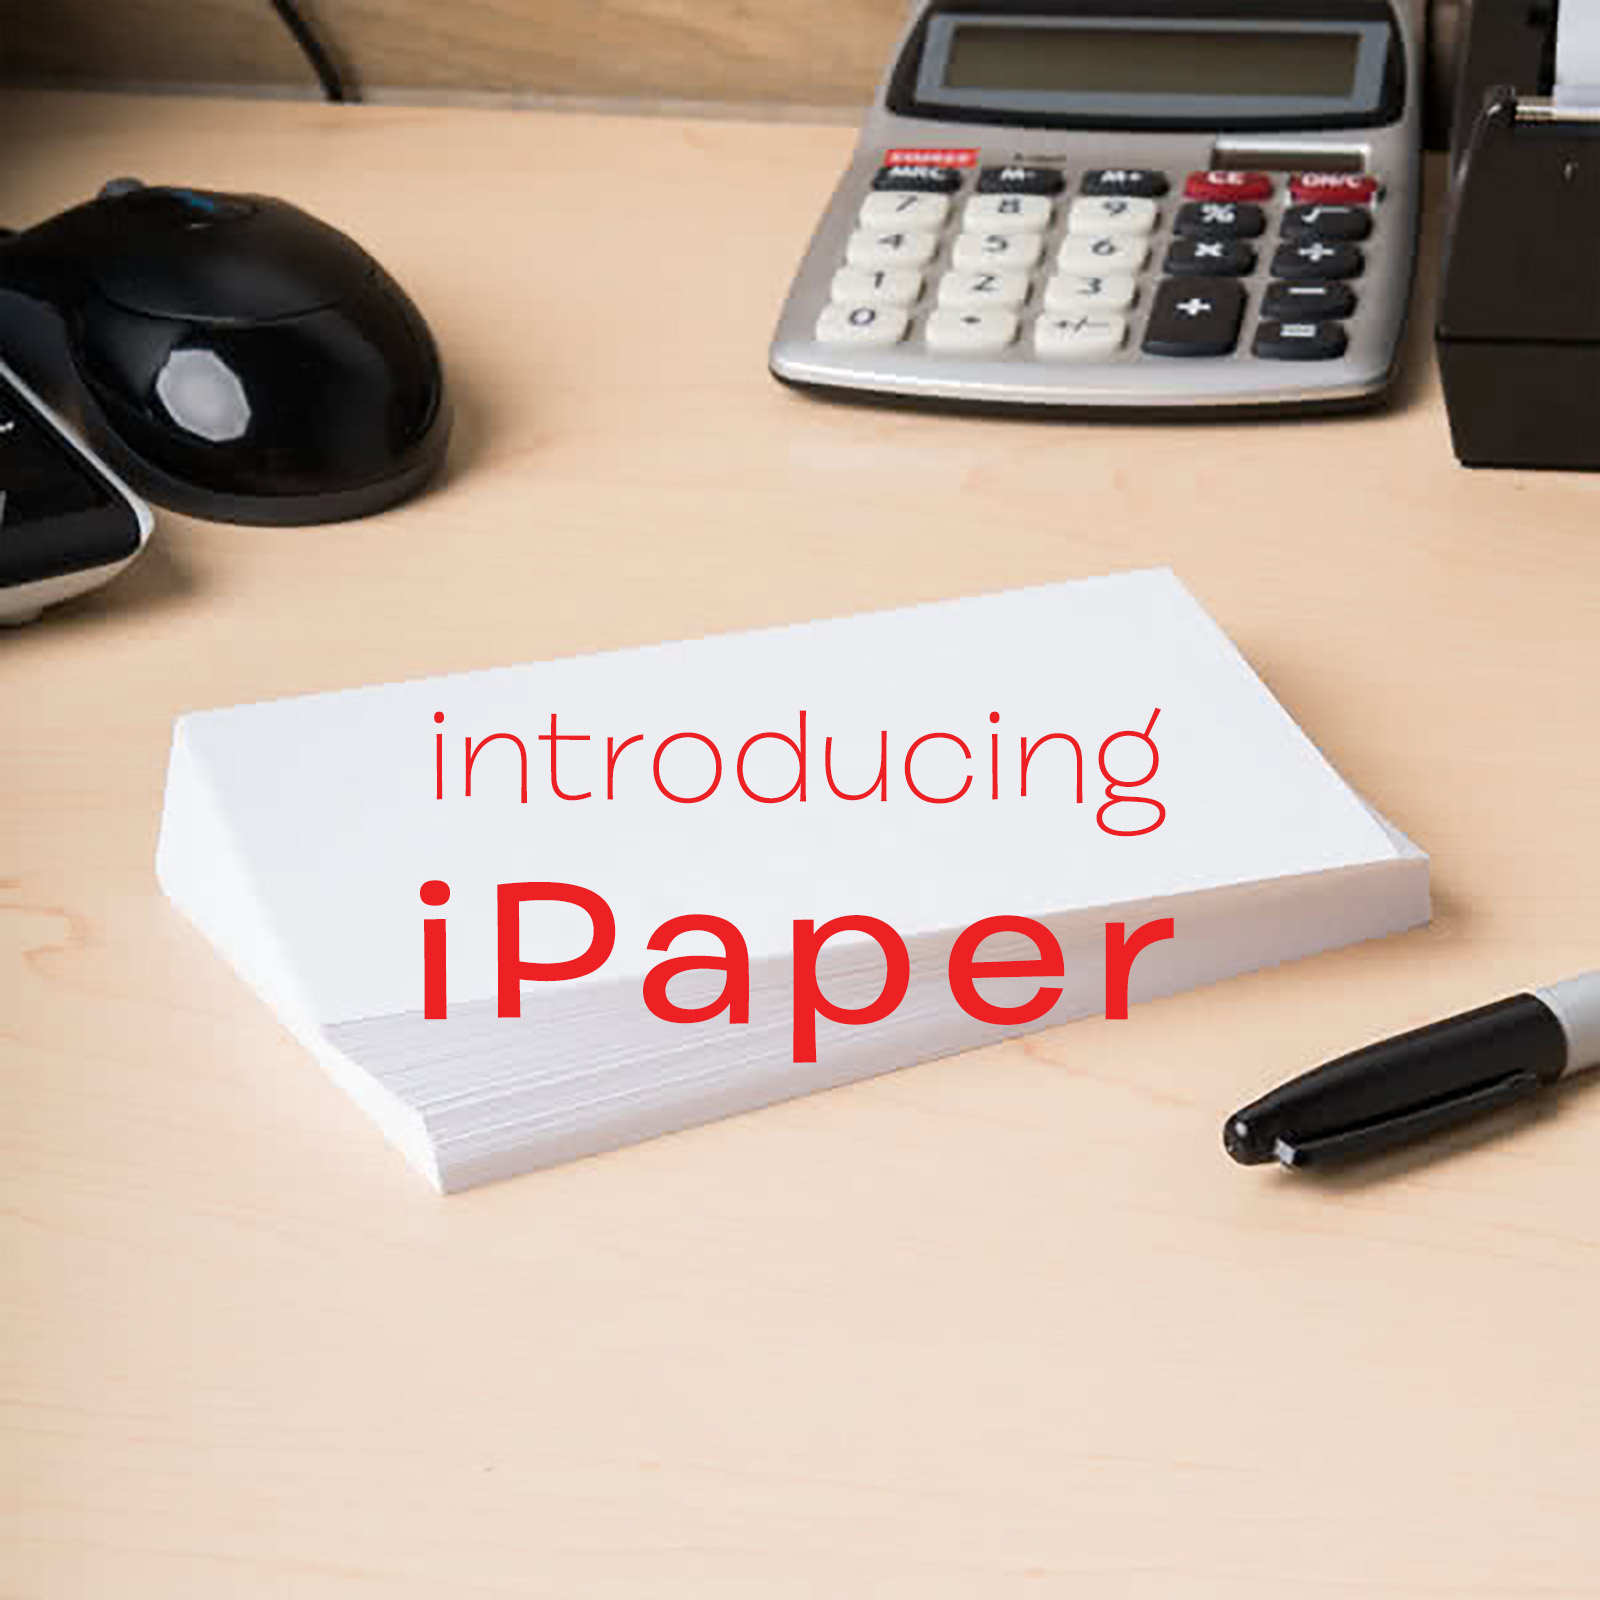 "image of white index cards with the title ""Introducing iPaper"" superimposed"